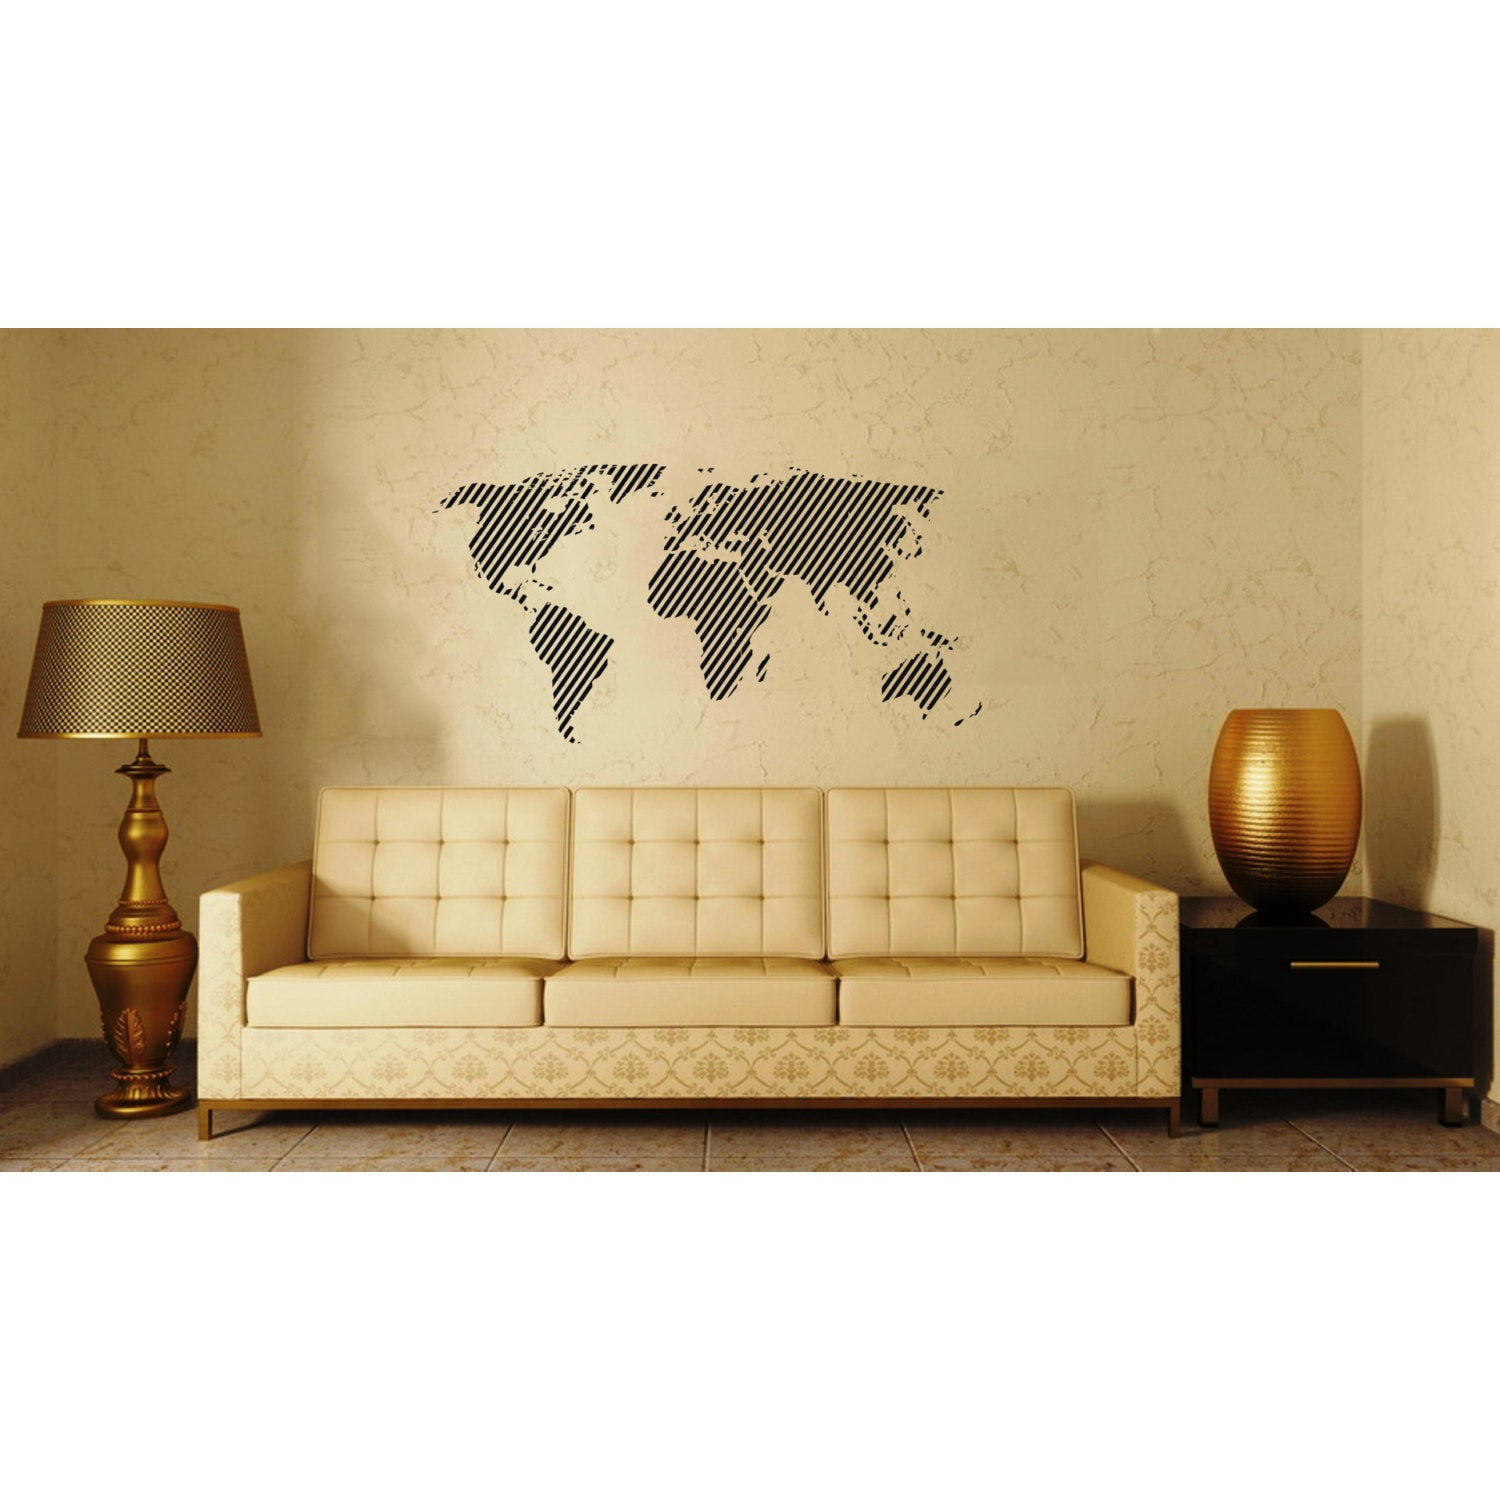 World Map Vinyl Sticker Wall Art - Free Shipping On Orders Over $45 ...